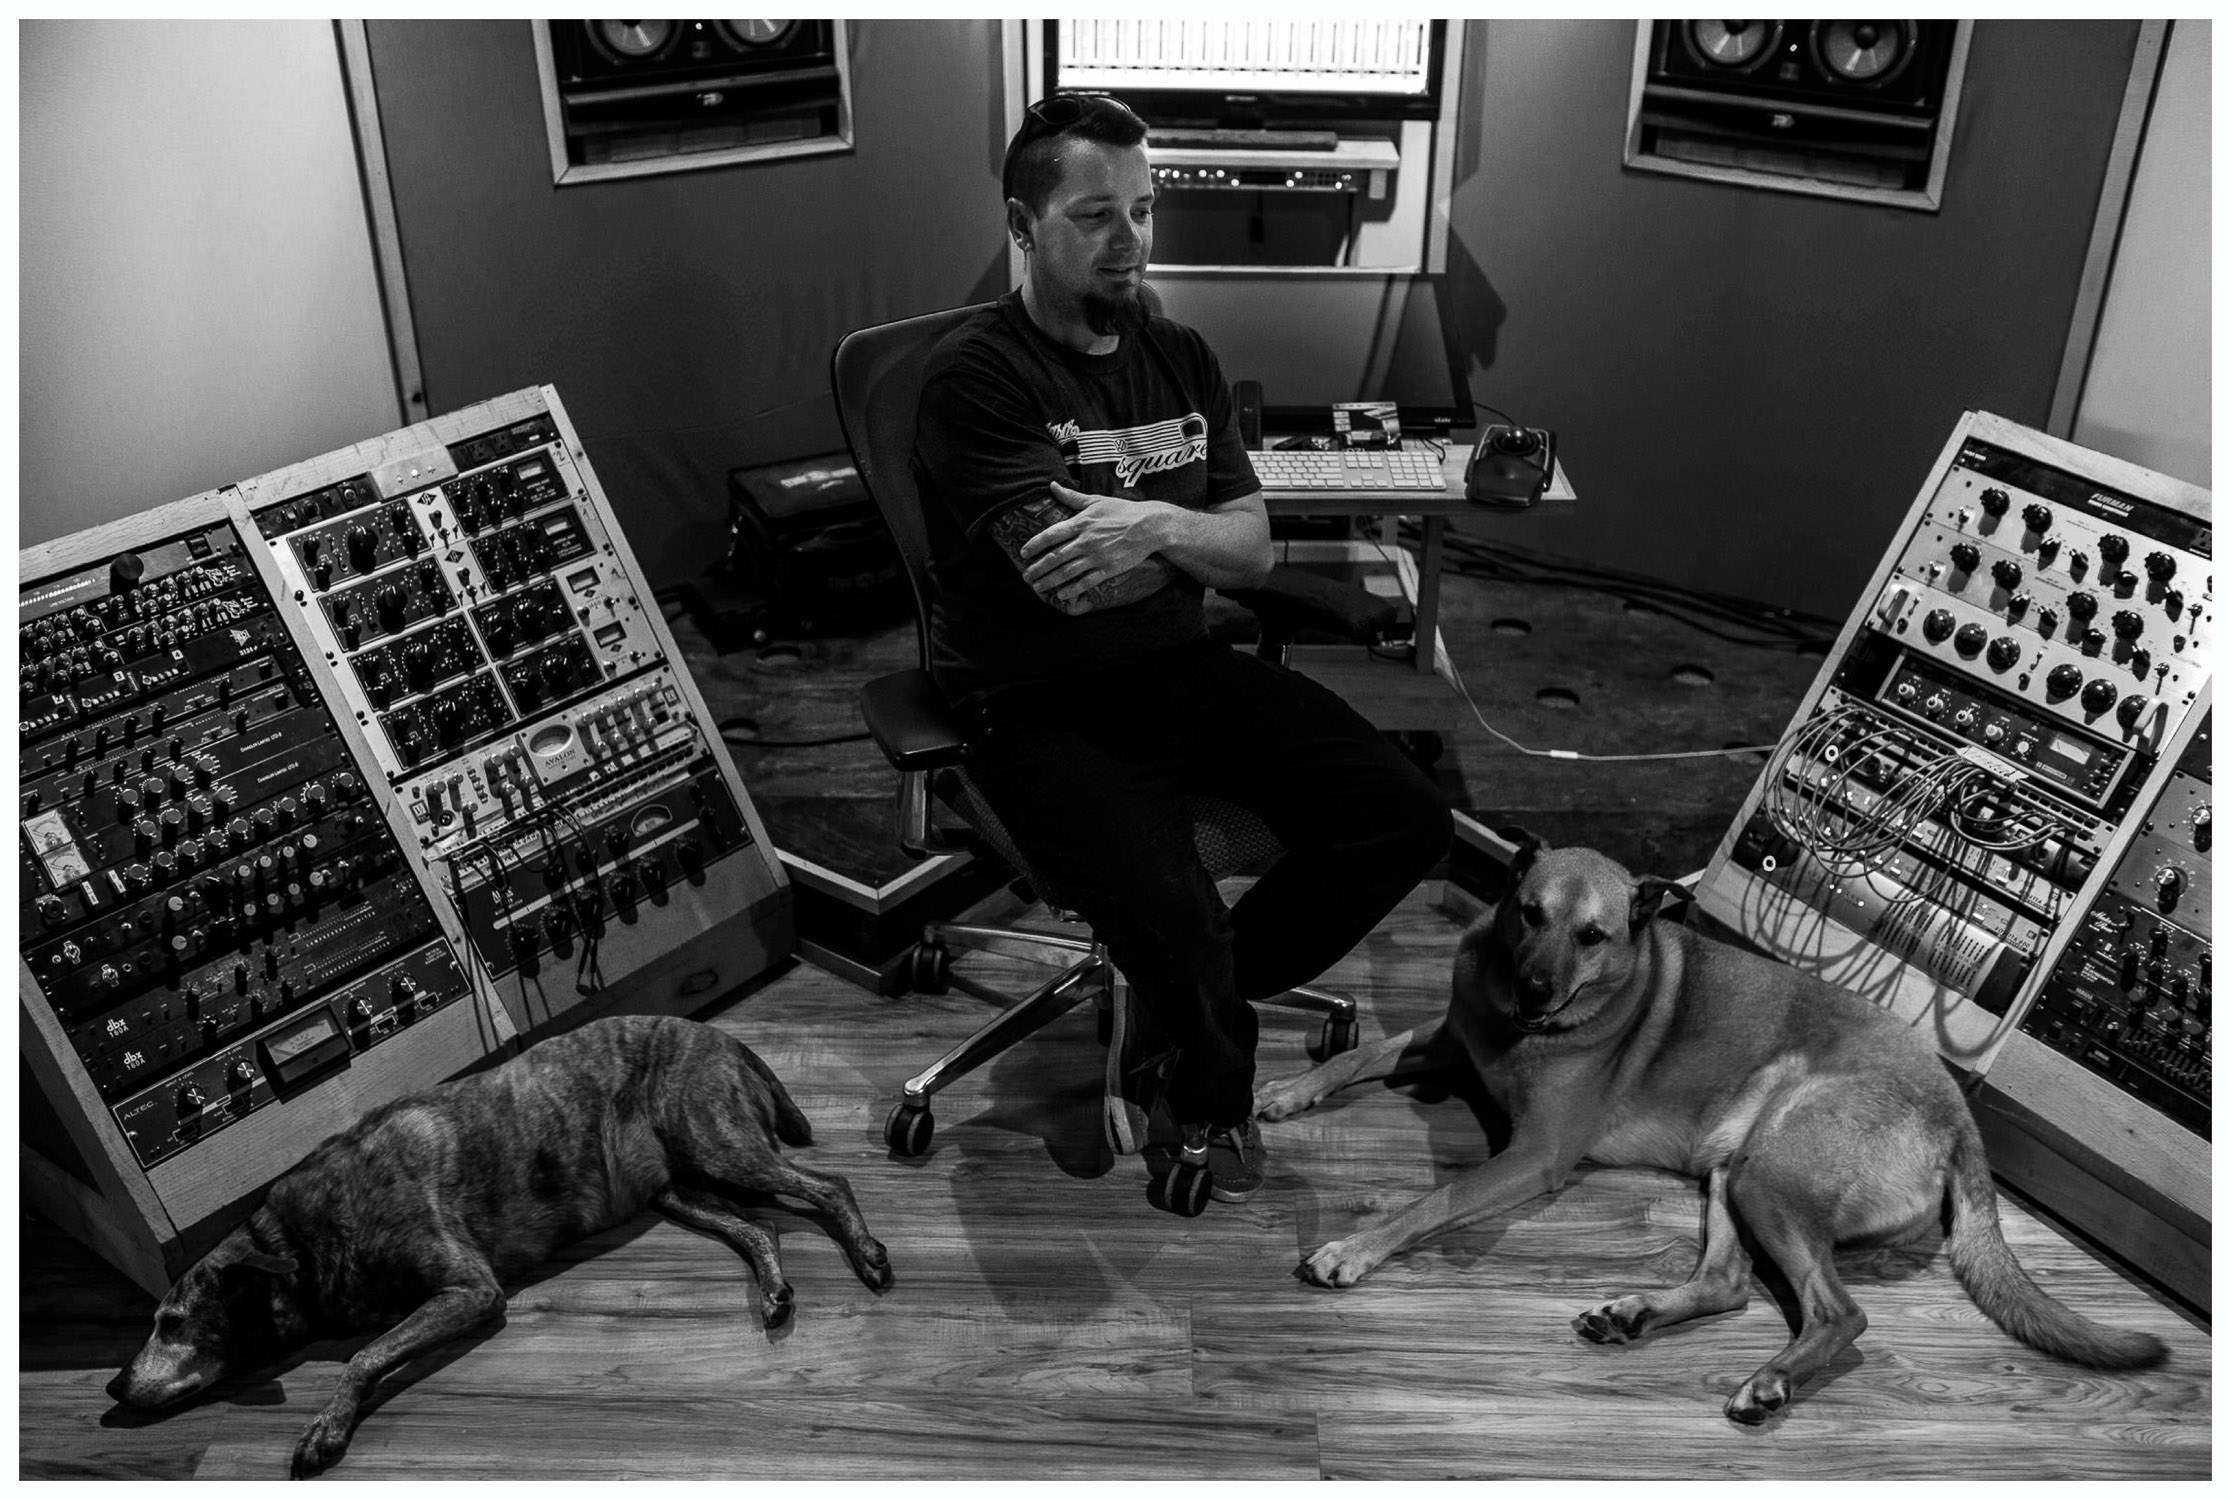 recoding studio USA musician with his 2 dogs